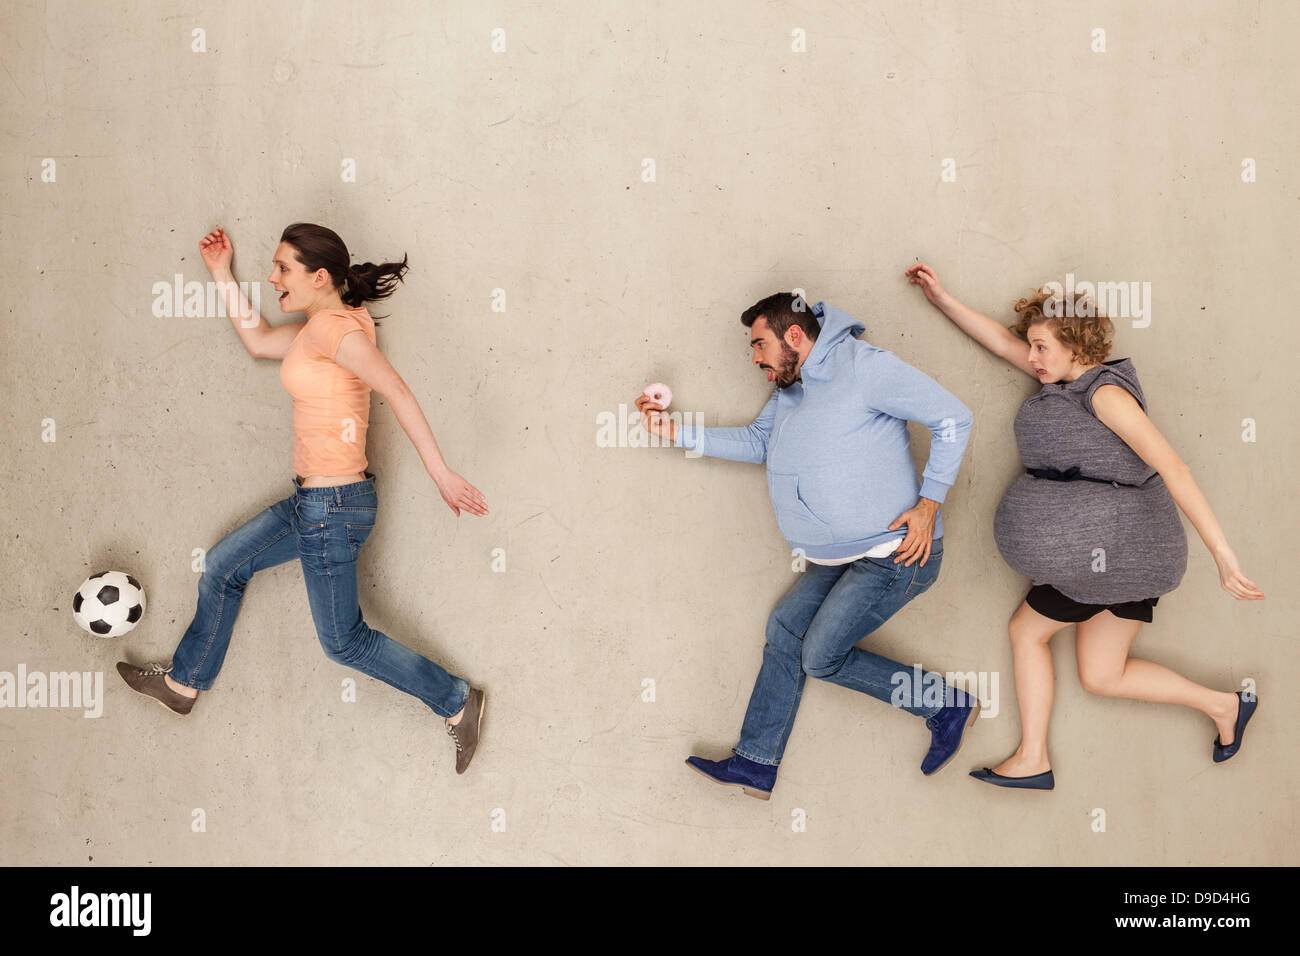 Women and man running against beige background - Stock Image